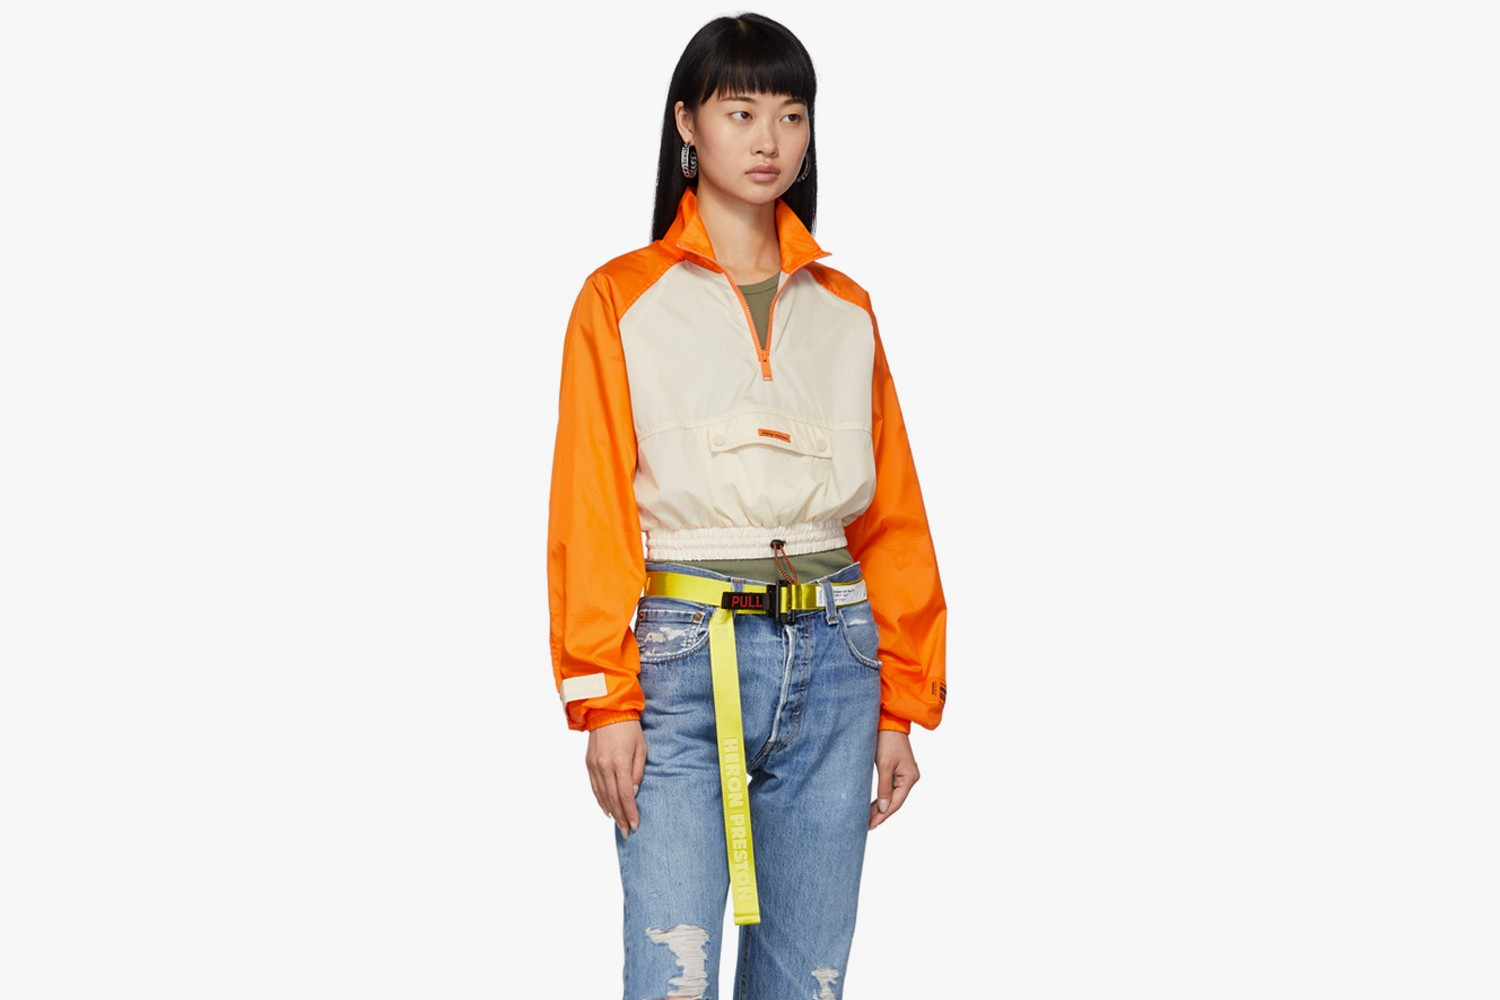 ways to style belts accessories fall winter acne studios maison margiela 1017 alyx 9sm